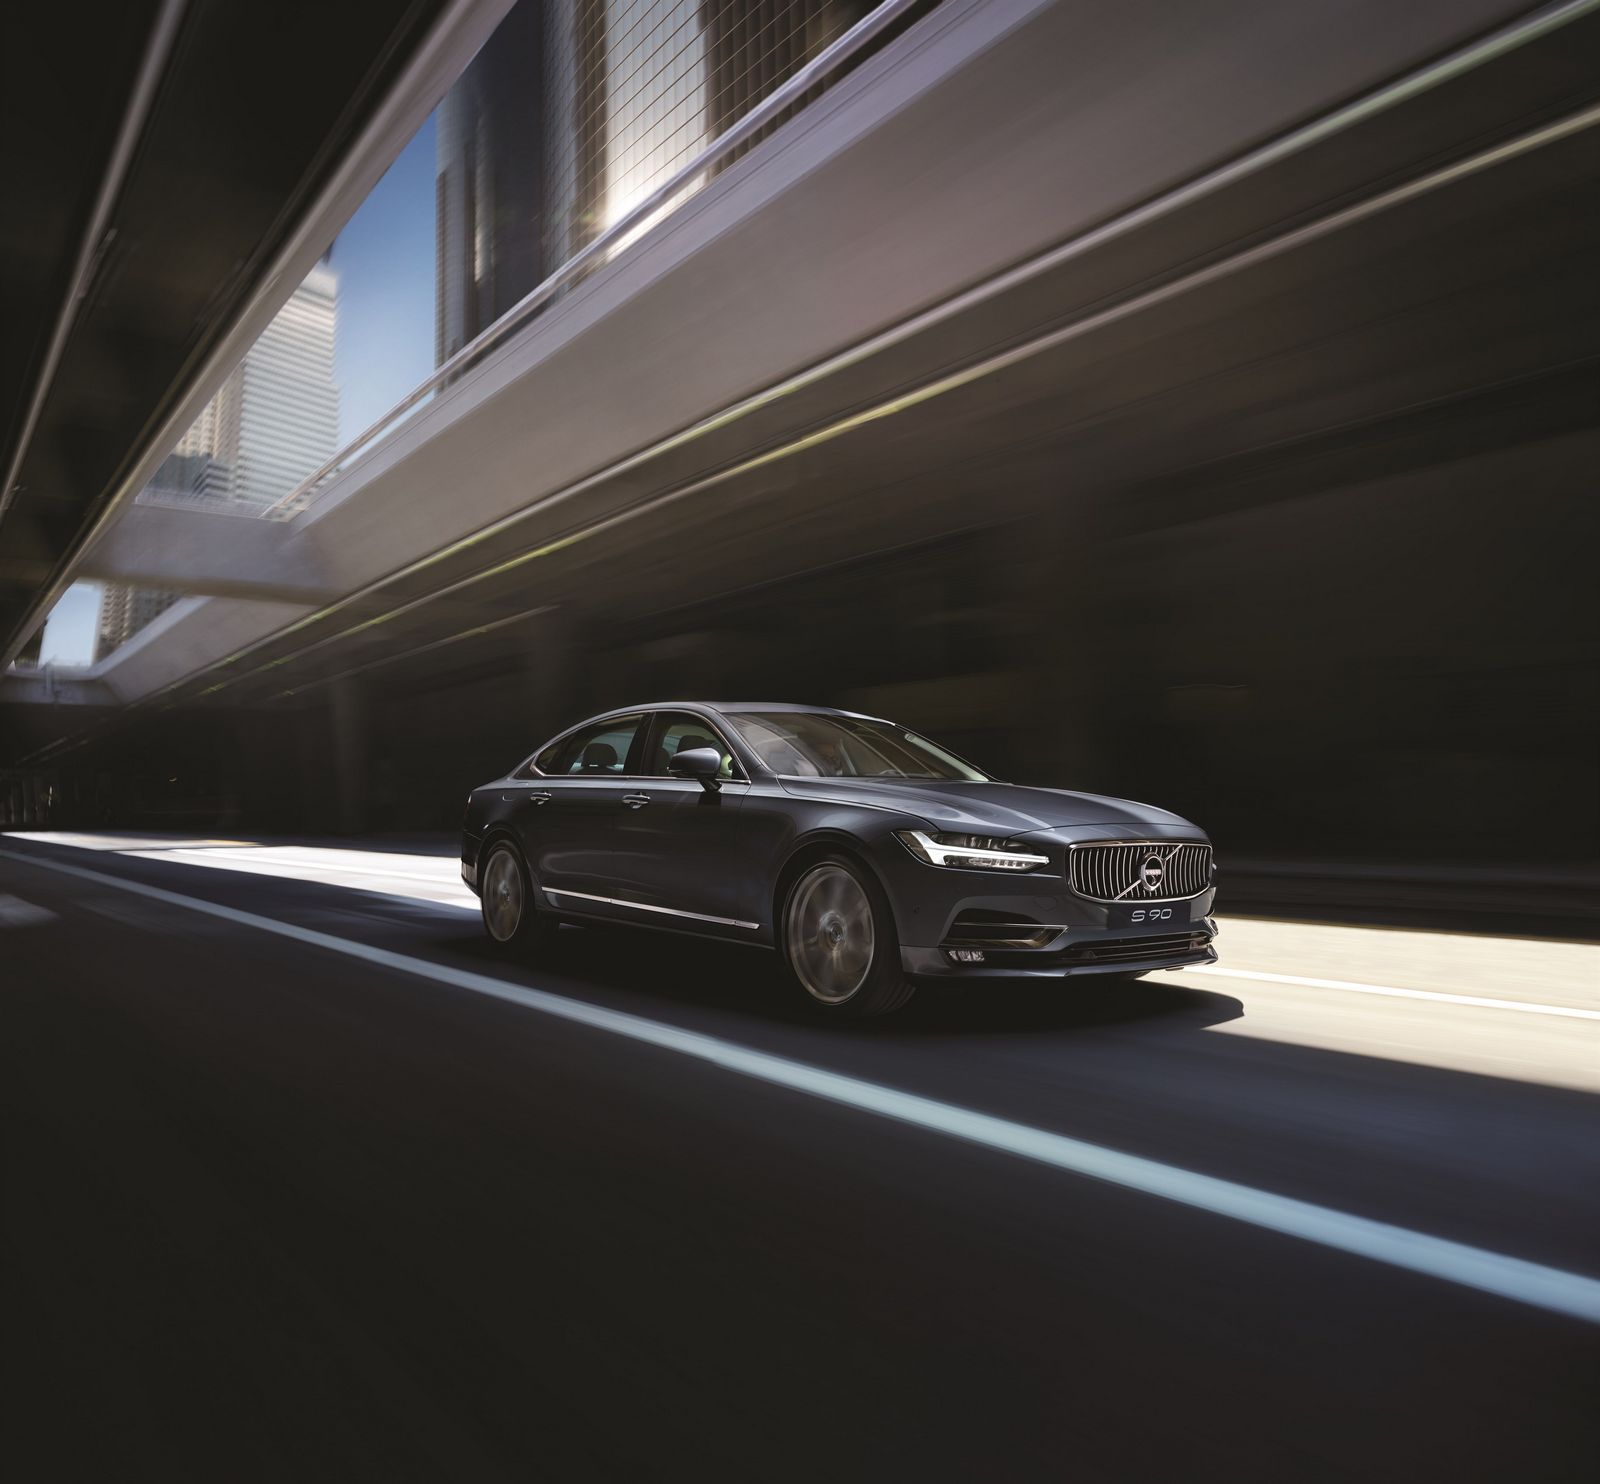 Volvo Presents New S90 Excellence, Moves S90 Production